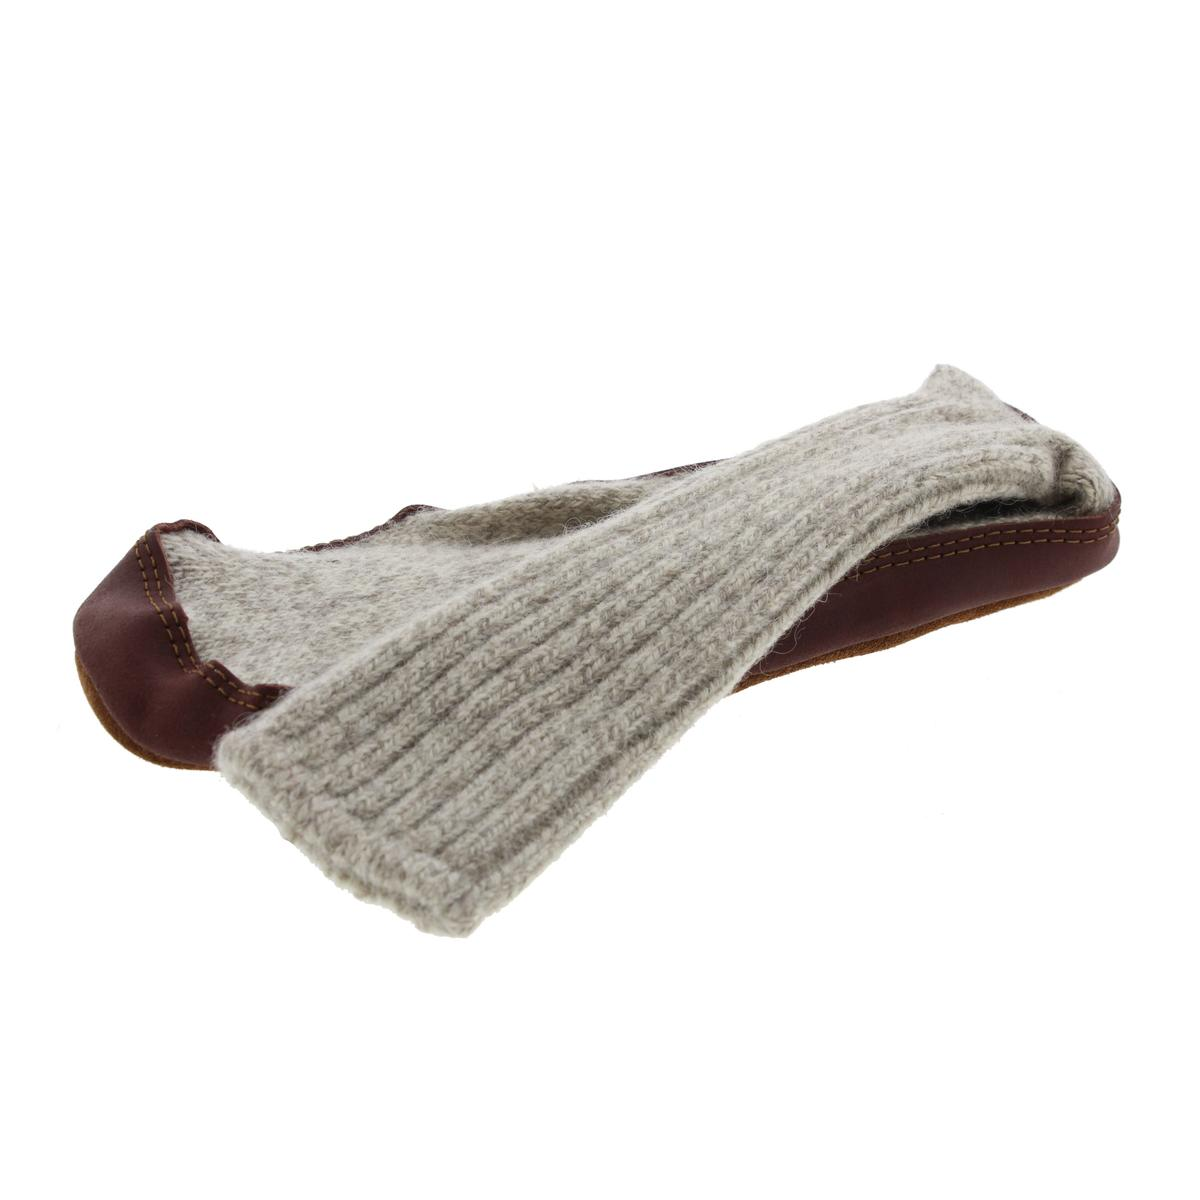 Winter Wool Cable Knit Over The Knee High Casual Boot Socks One Size: XS to M Brand New · One Size out of 5 stars - Winter Wool Cable Knit Over The Knee High Casual Boot Socks One Size: XS .